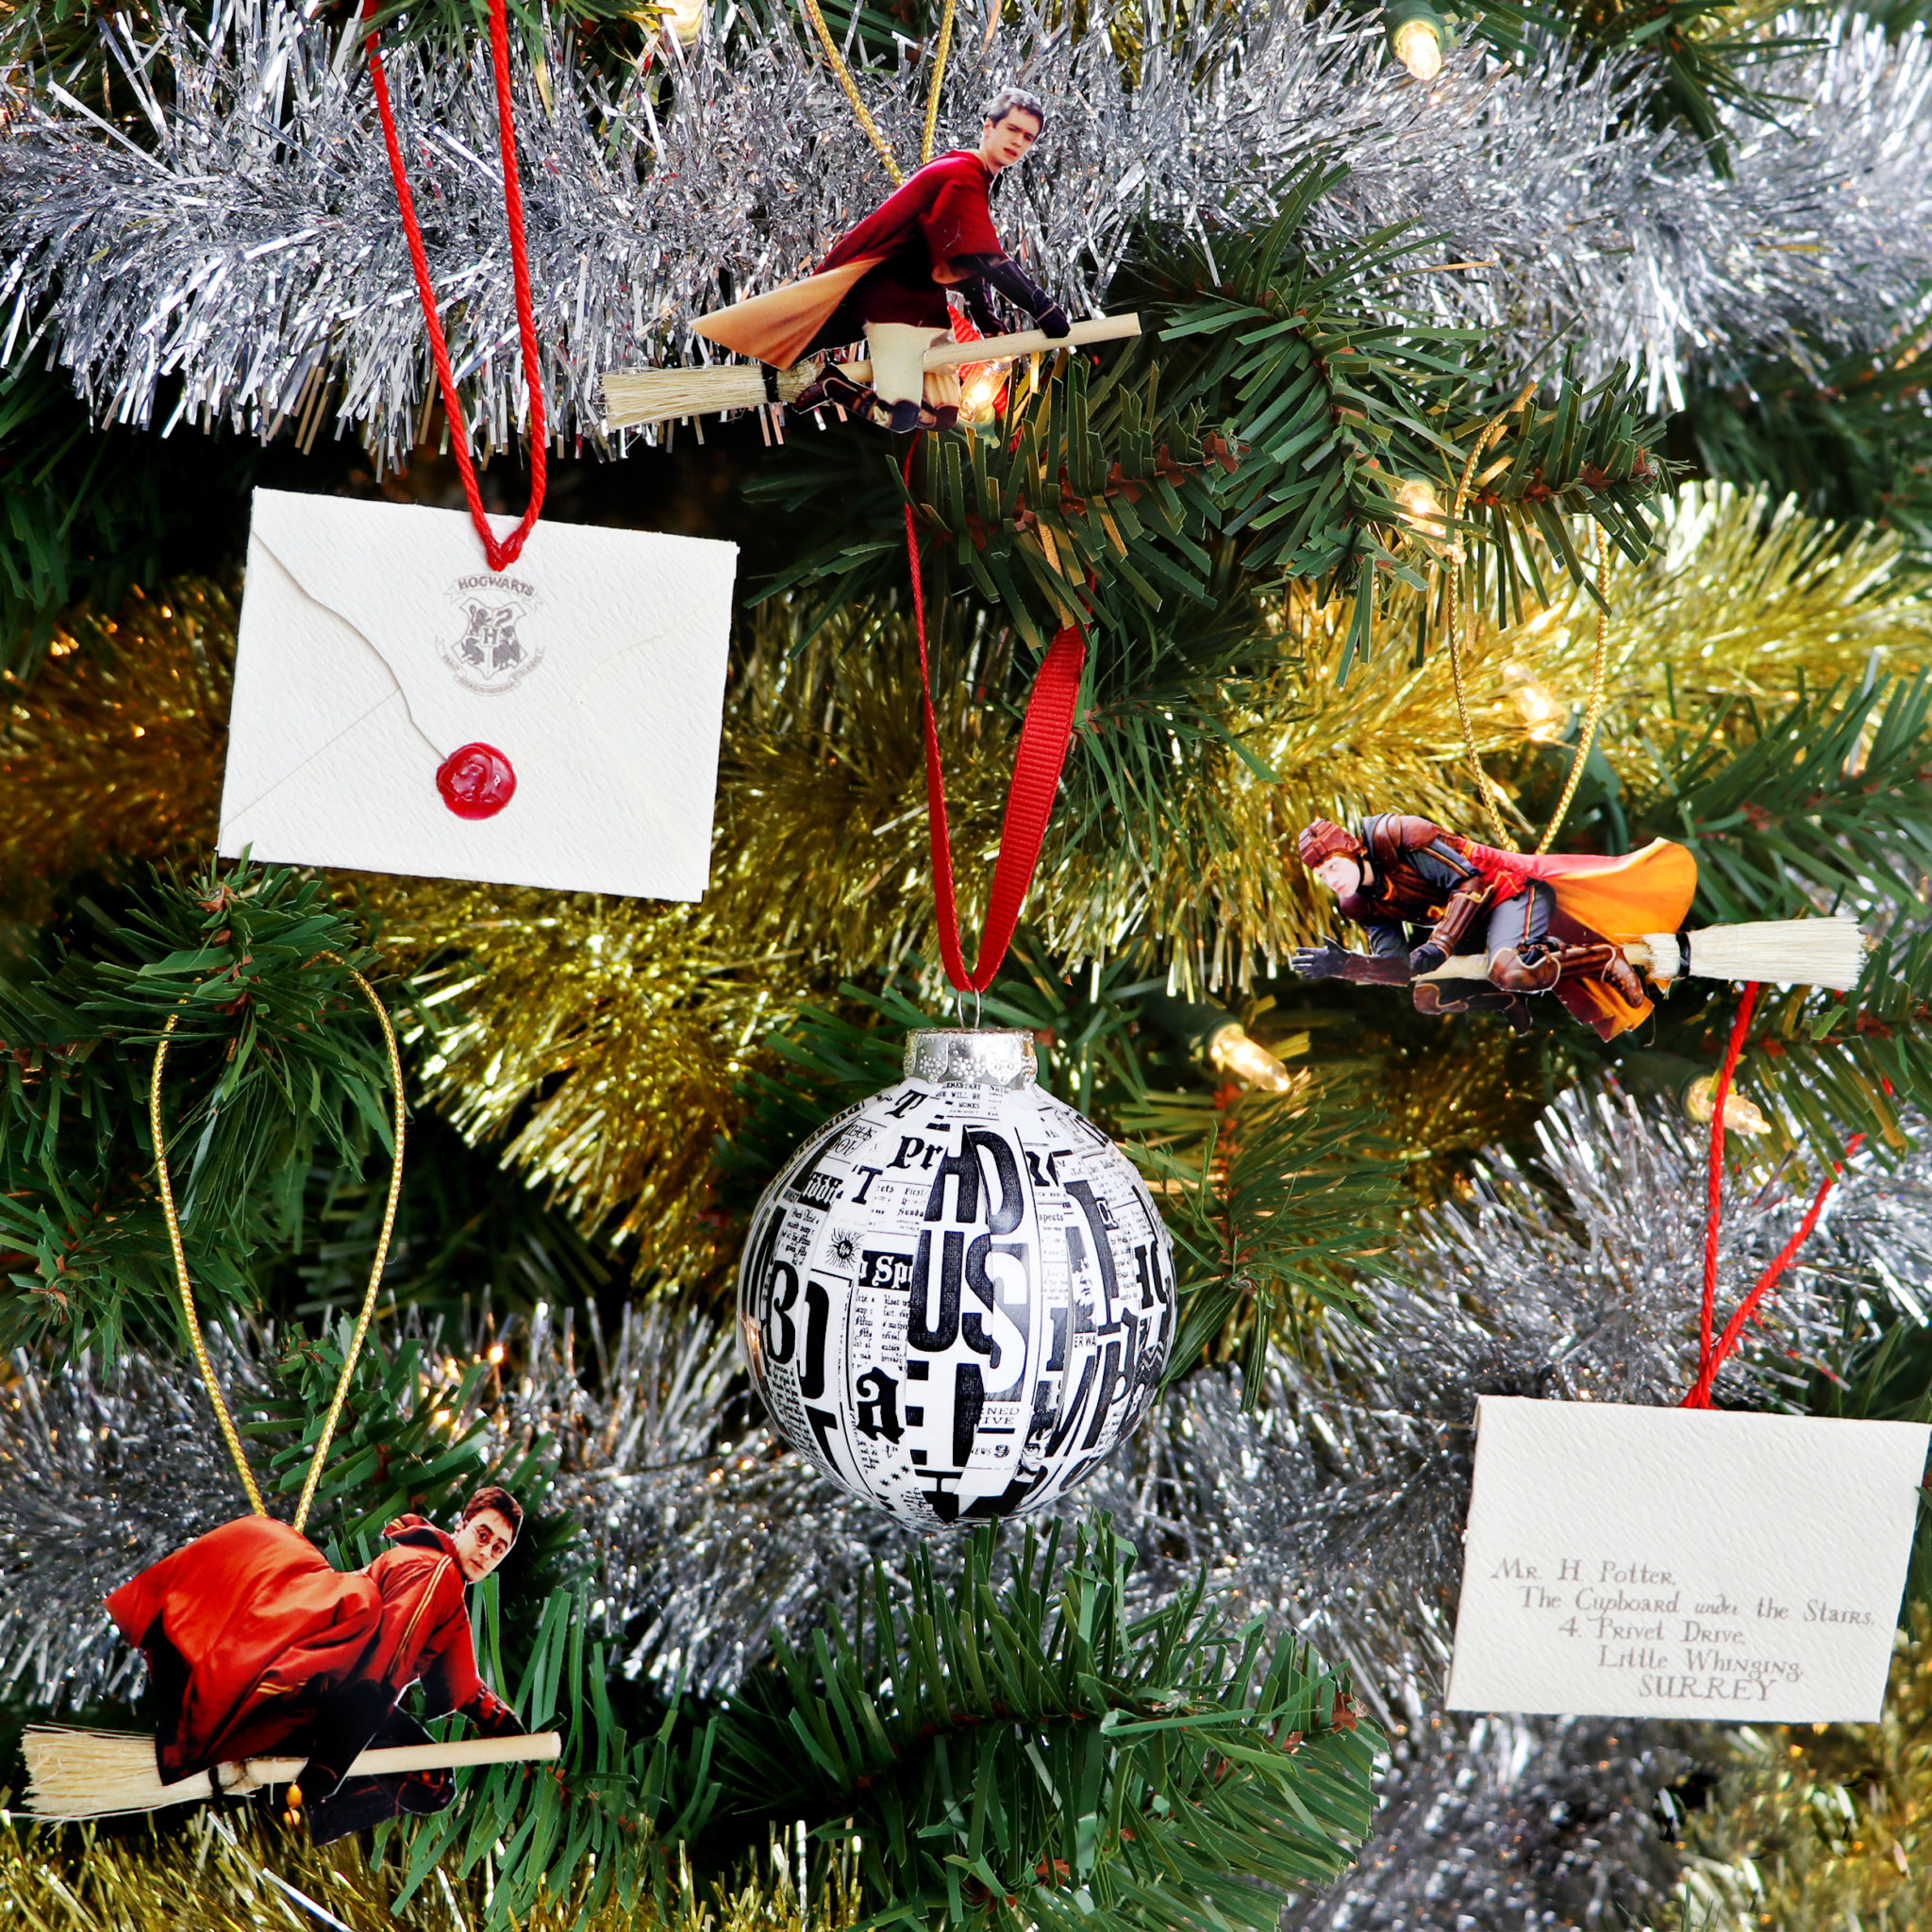 Diy Harry Potter Christmas Ornaments Project For Awesome 2016 Karen Kavett